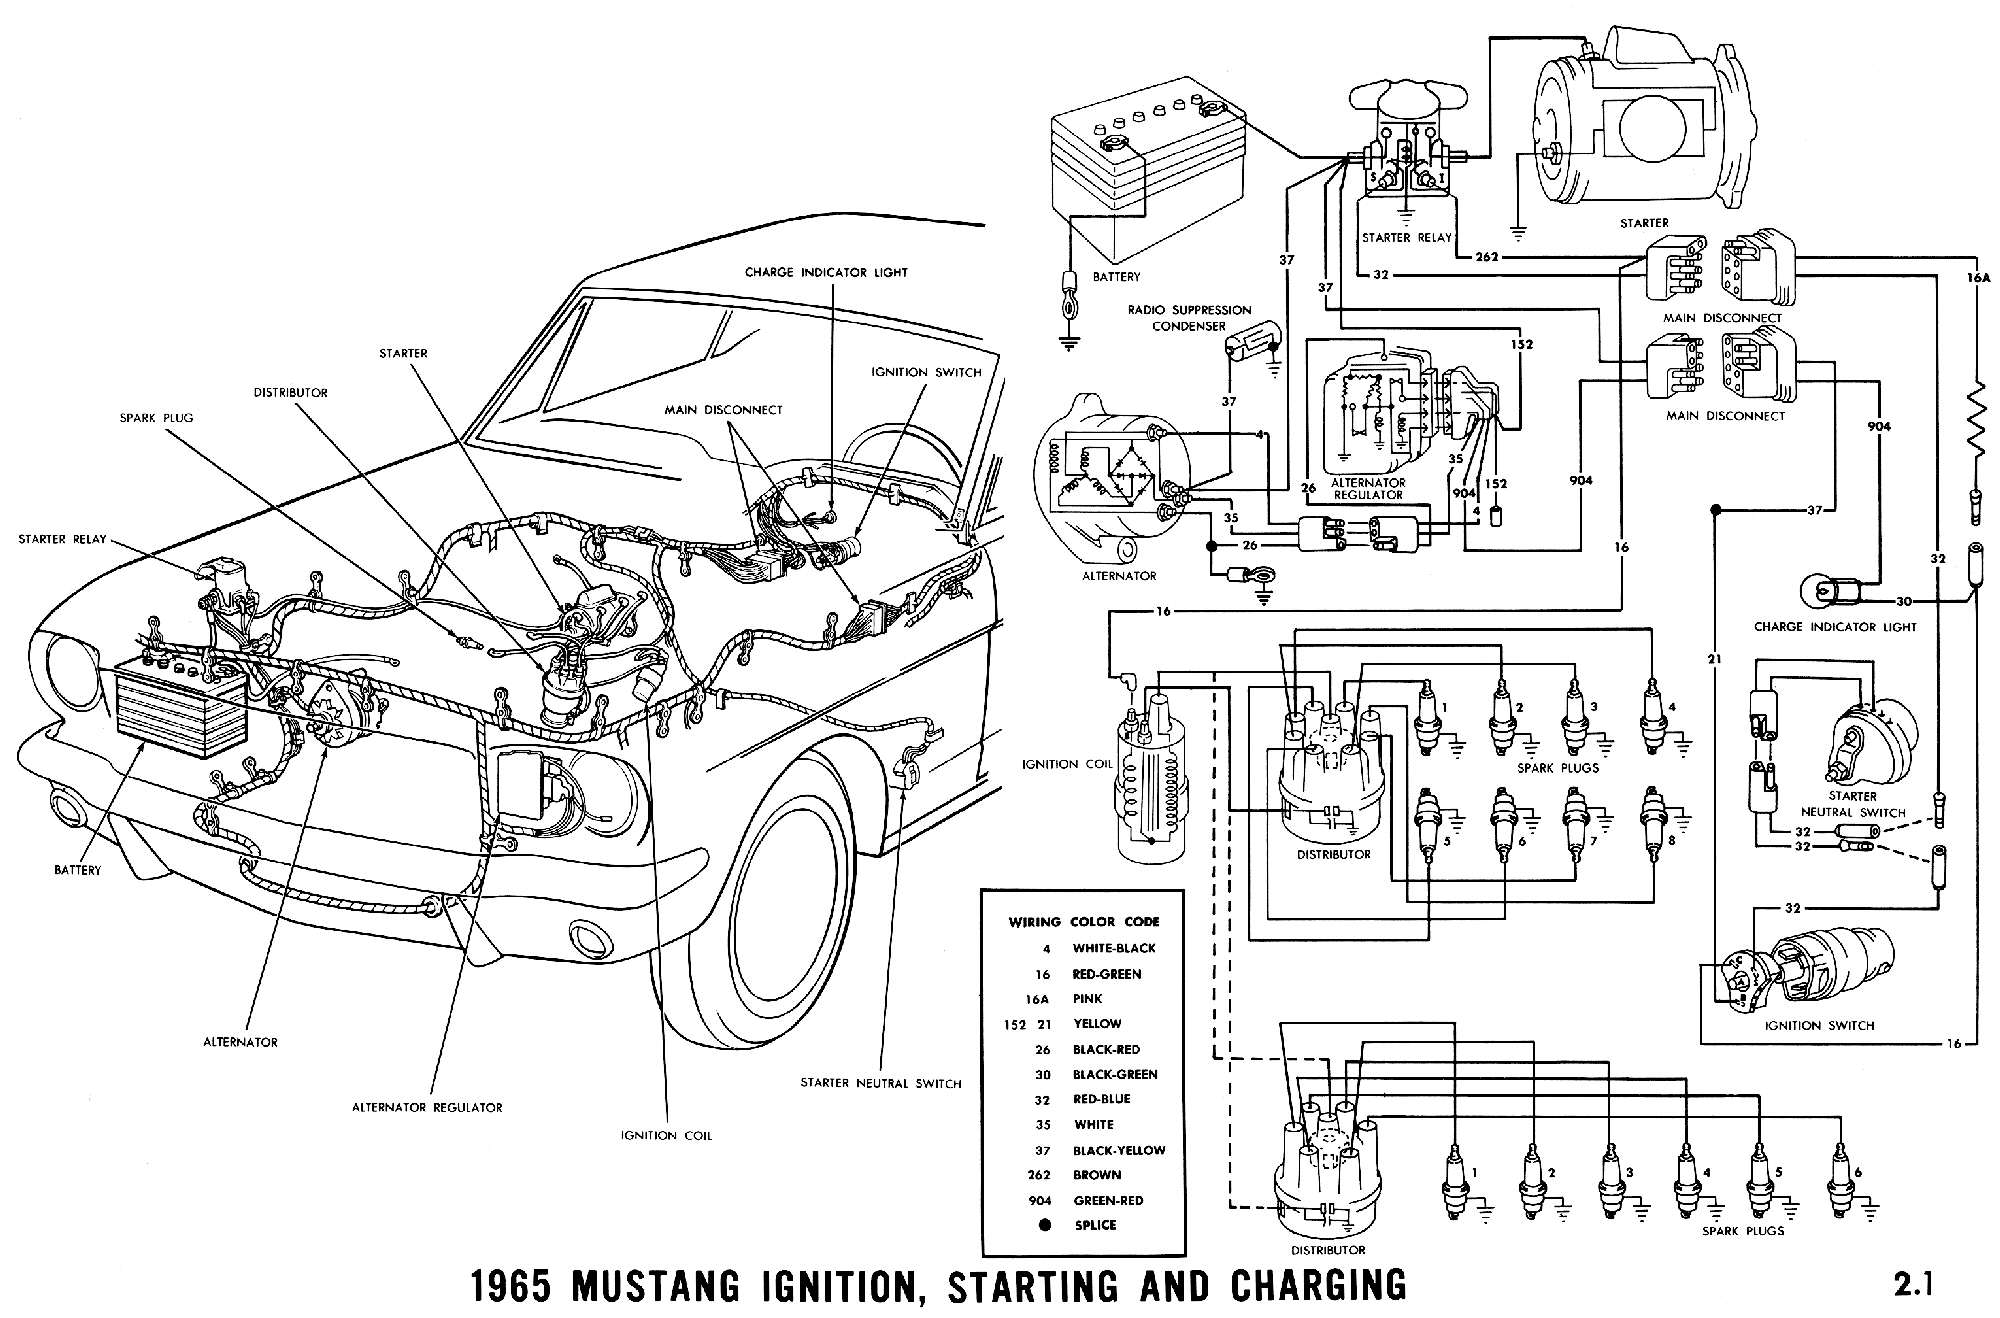 1965c 1965 mustang wiring diagrams average joe restoration 2007 Mustang Wiring Harness Diagram at panicattacktreatment.co